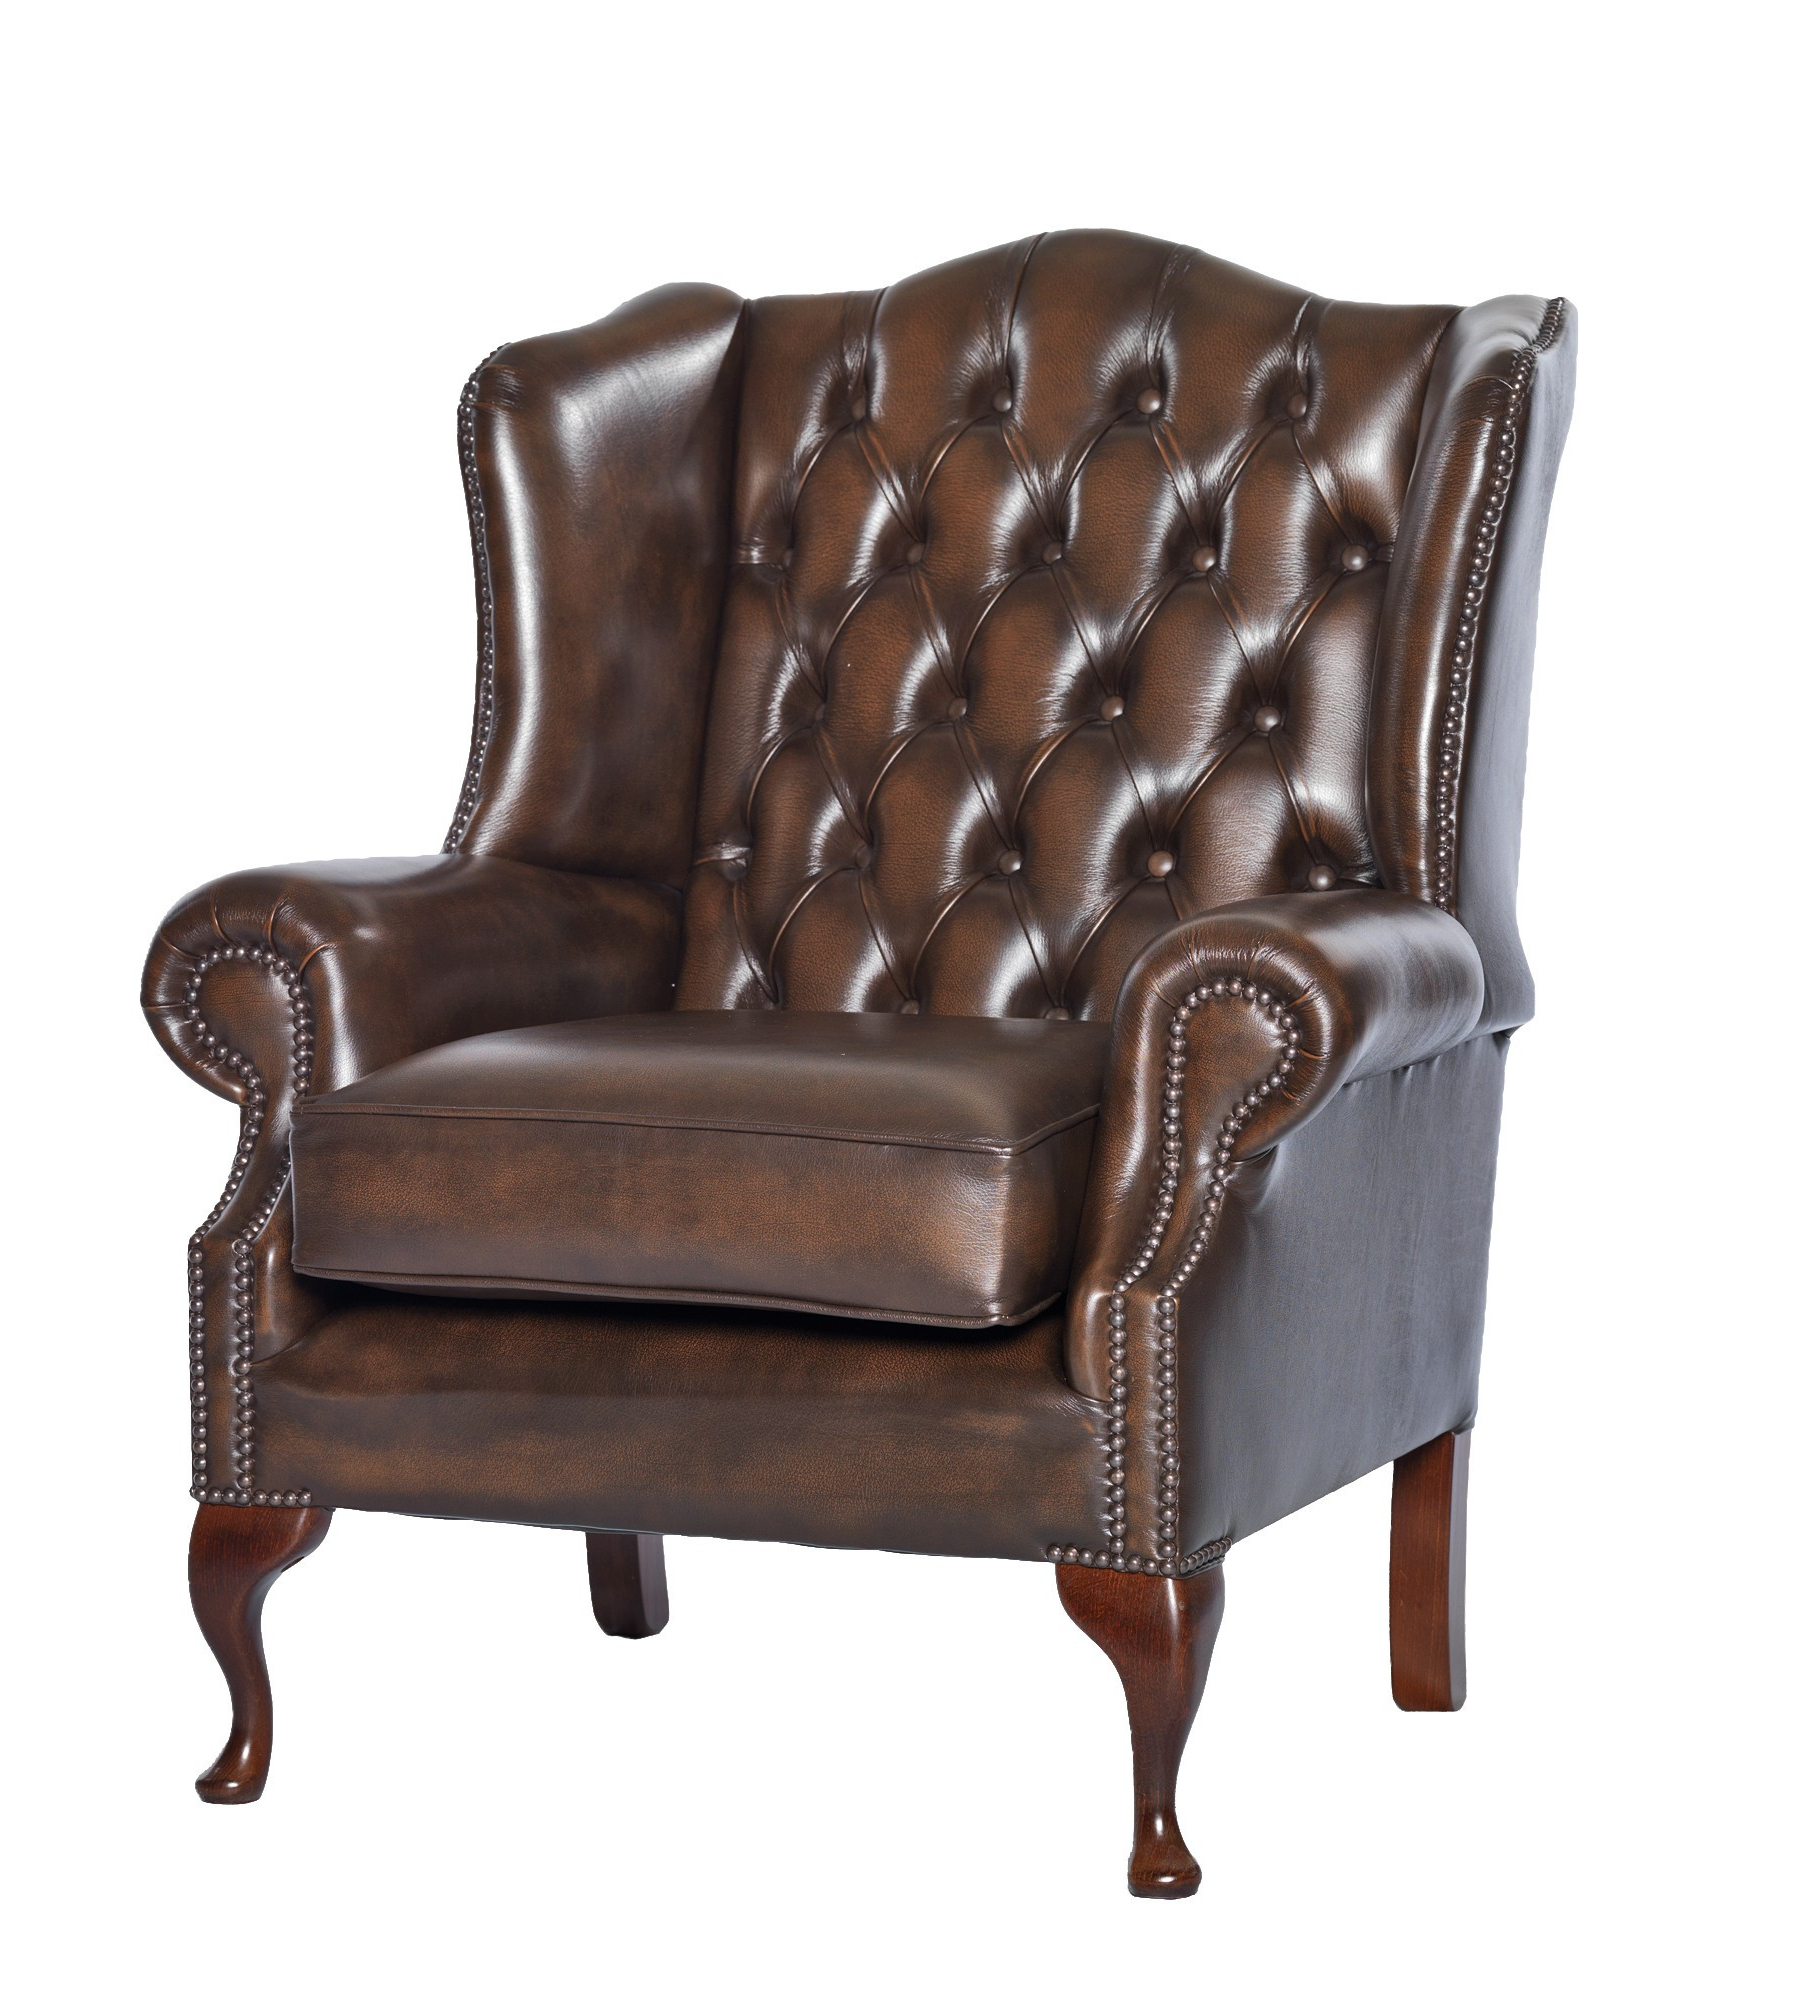 Chesterfield Sofa And Chairs Within Preferred Queen Anne Leather Chesterfield Sofa Or Chair – Leather Sofas And Chairs (View 5 of 20)